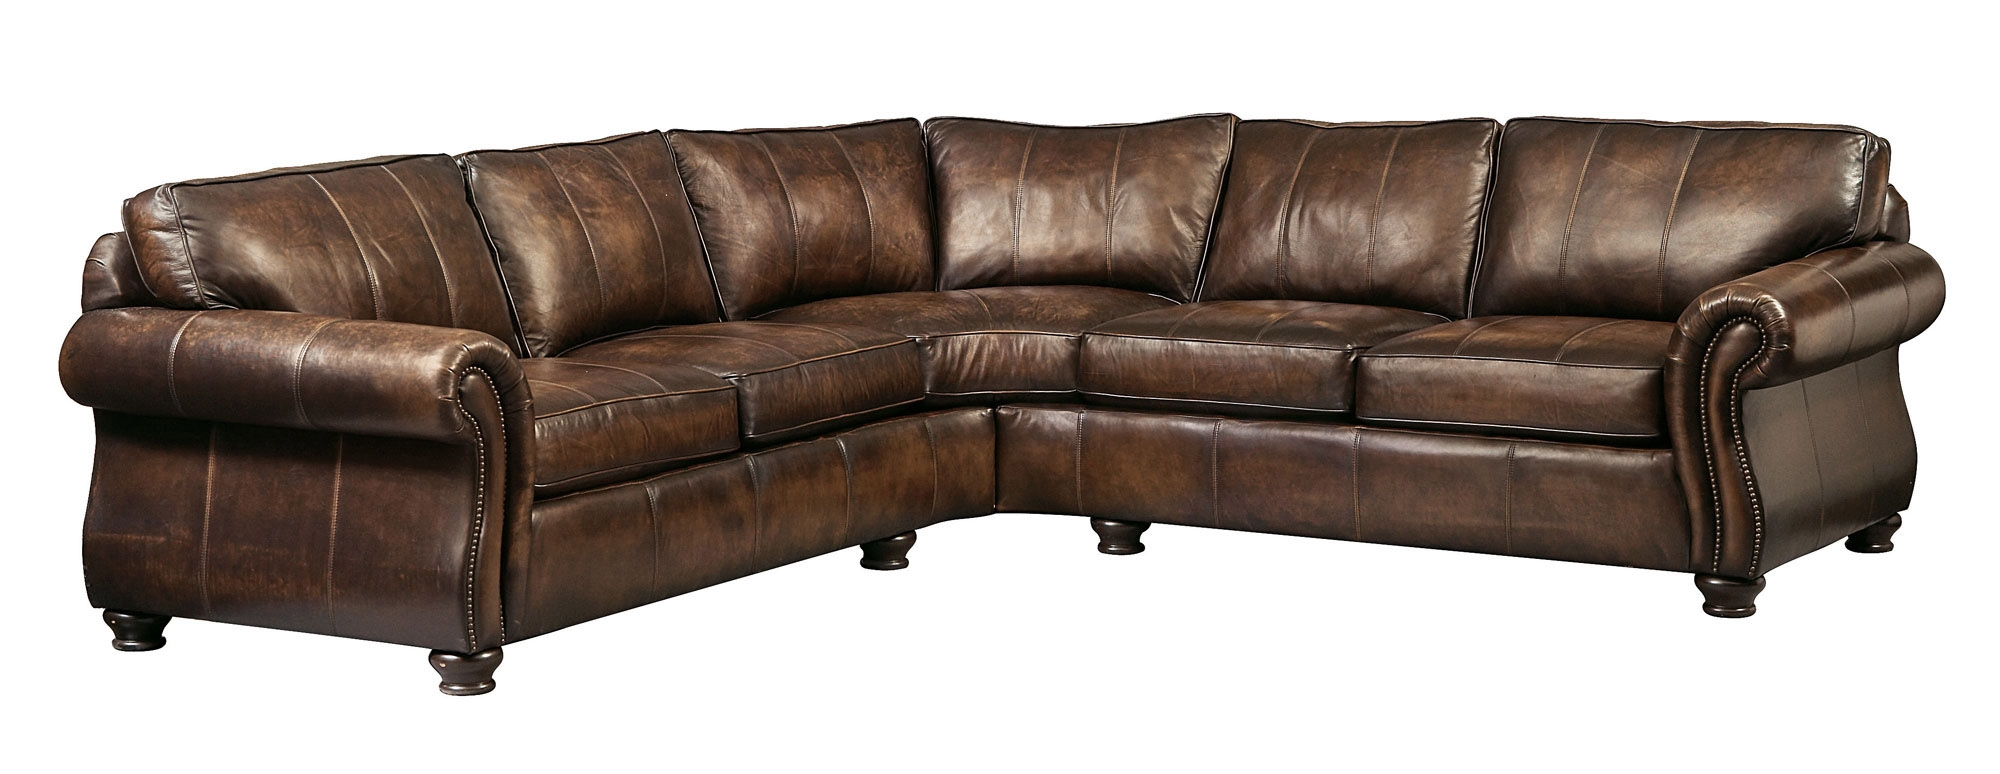 Bradley Sectional Sofa Cleanupflorida Intended For Bradley Sectional Sofa (#6 of 12)